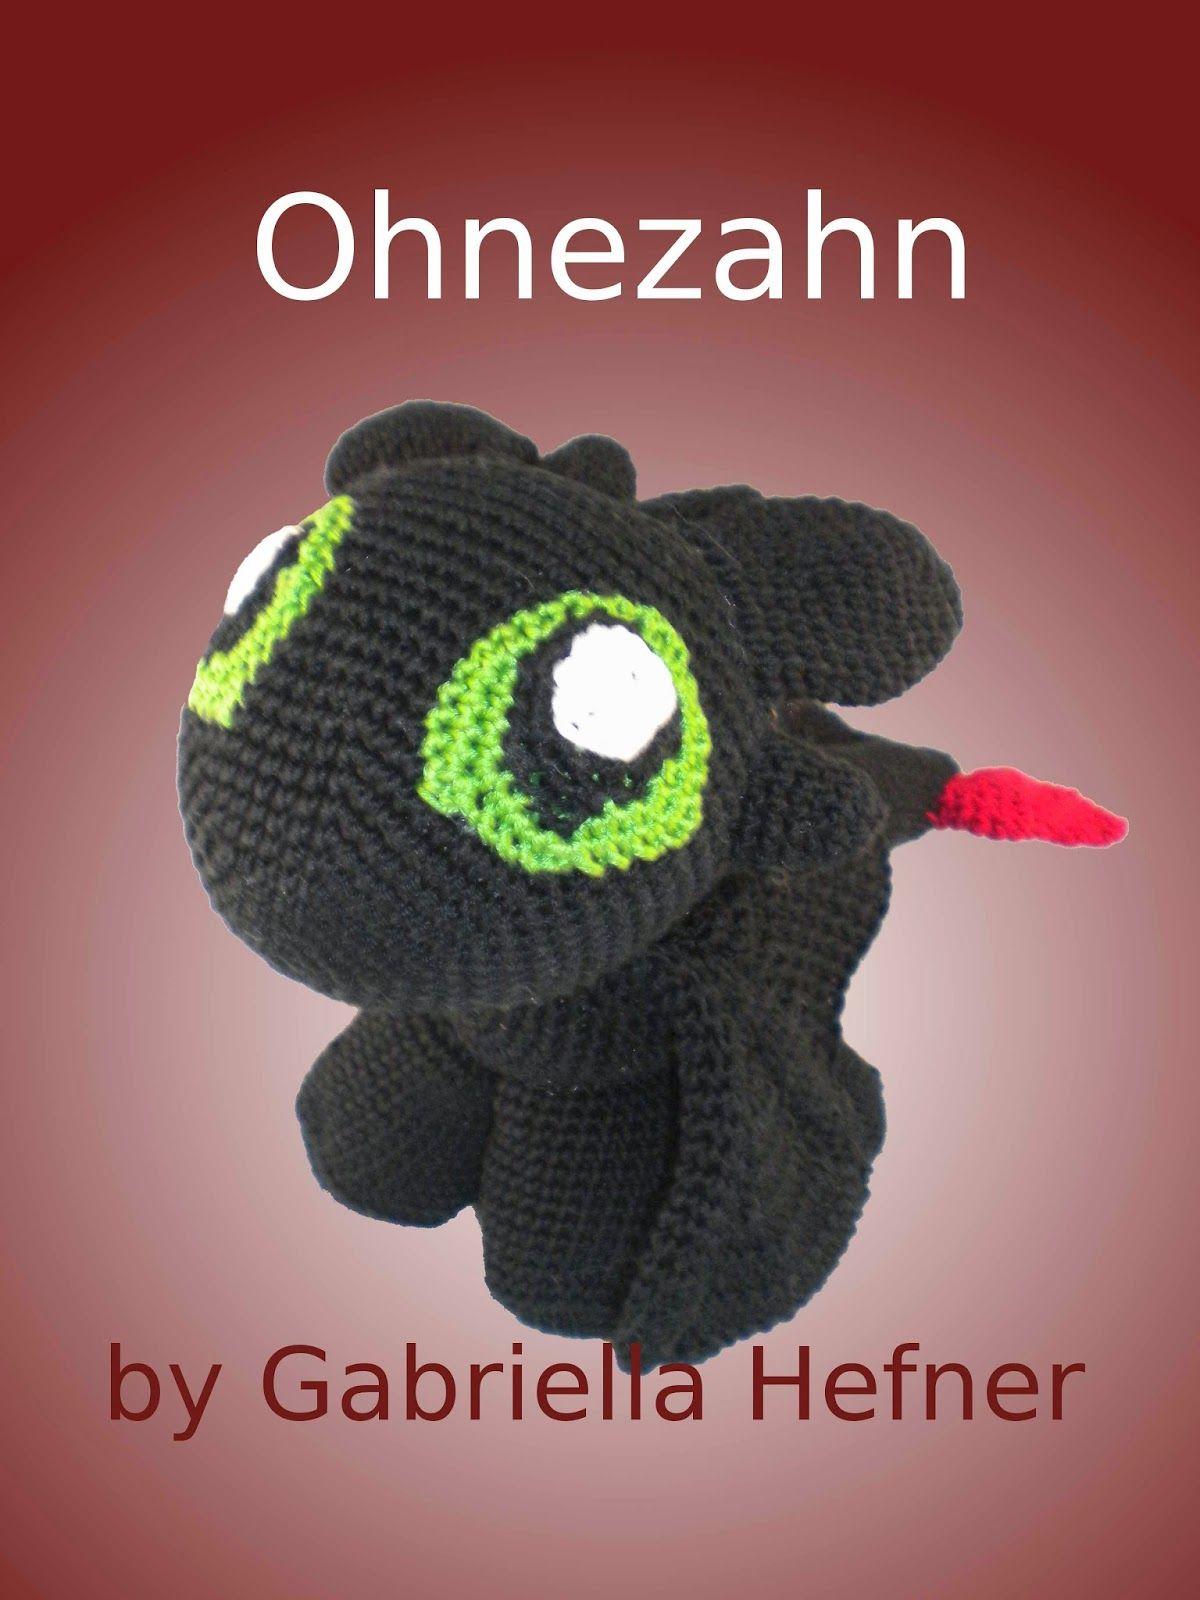 Pin von Marisa Shulman auf Crochet Patterns | Pinterest | Amigurumi ...